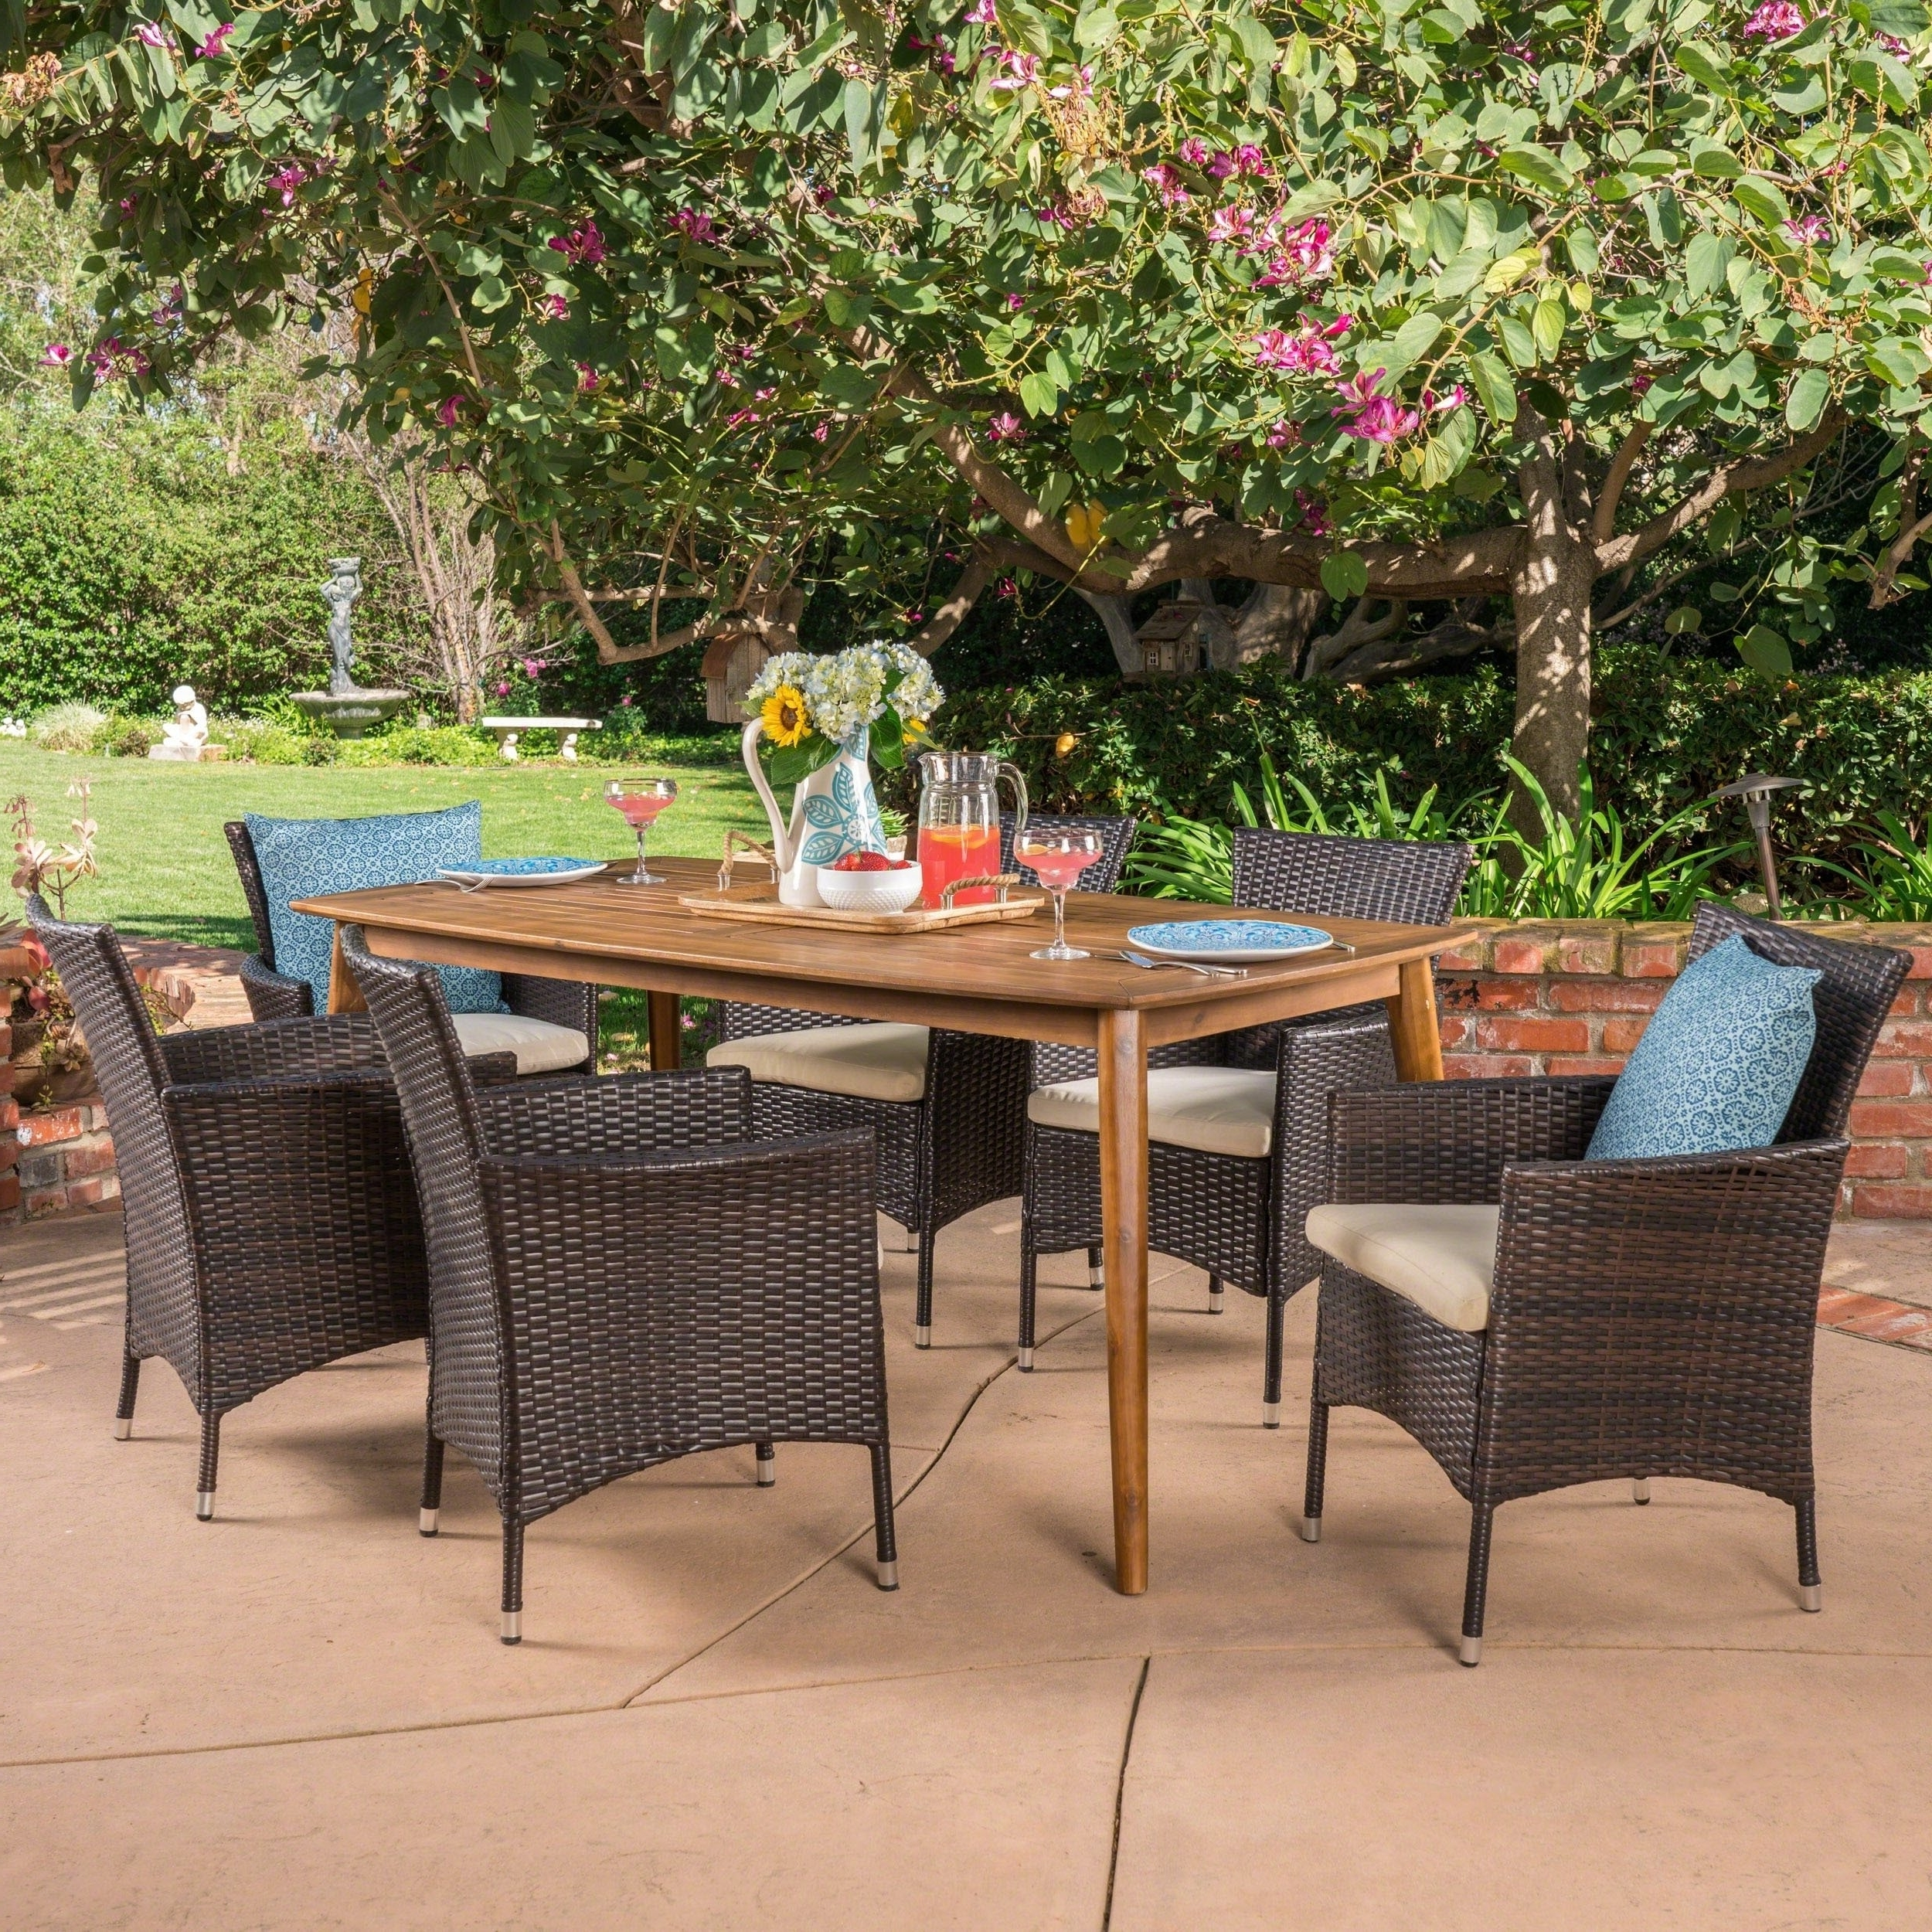 Jaxon 7 Piece Rectangle Dining Sets With Wood Chairs With Regard To Preferred Shop Jaxon Outdoor 7 Piece Multibrown Pe Wicker Dining Set With (Gallery 6 of 25)